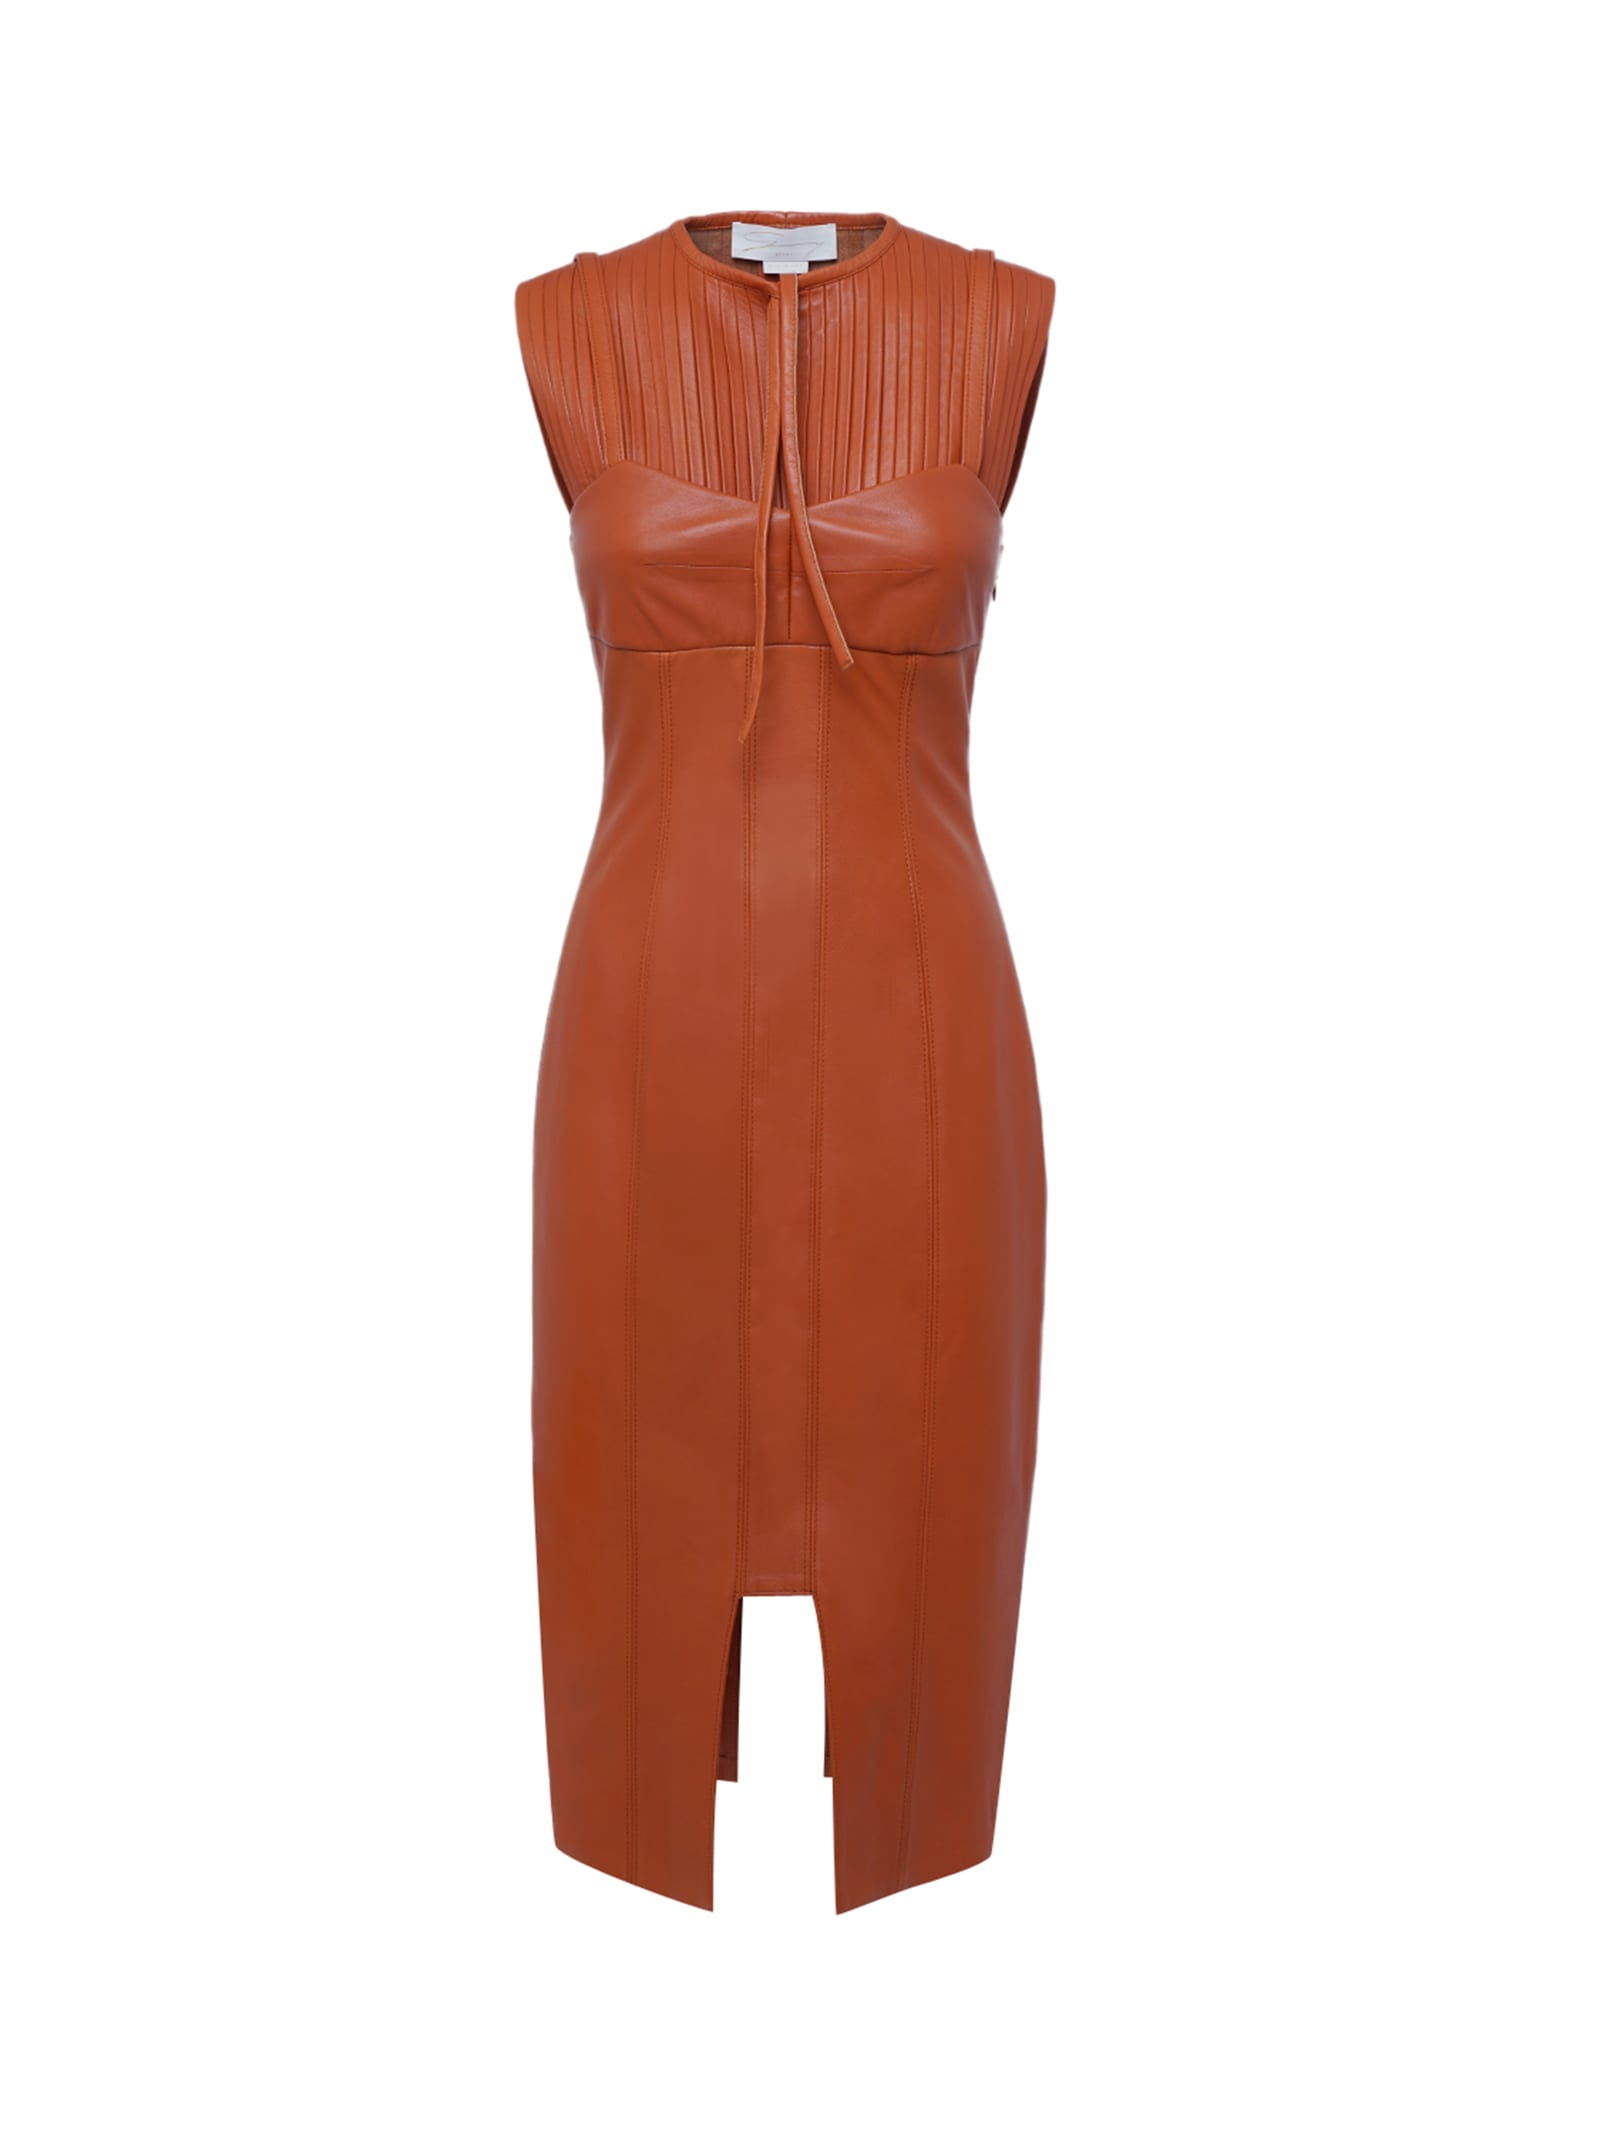 Leather Cocktail Dress